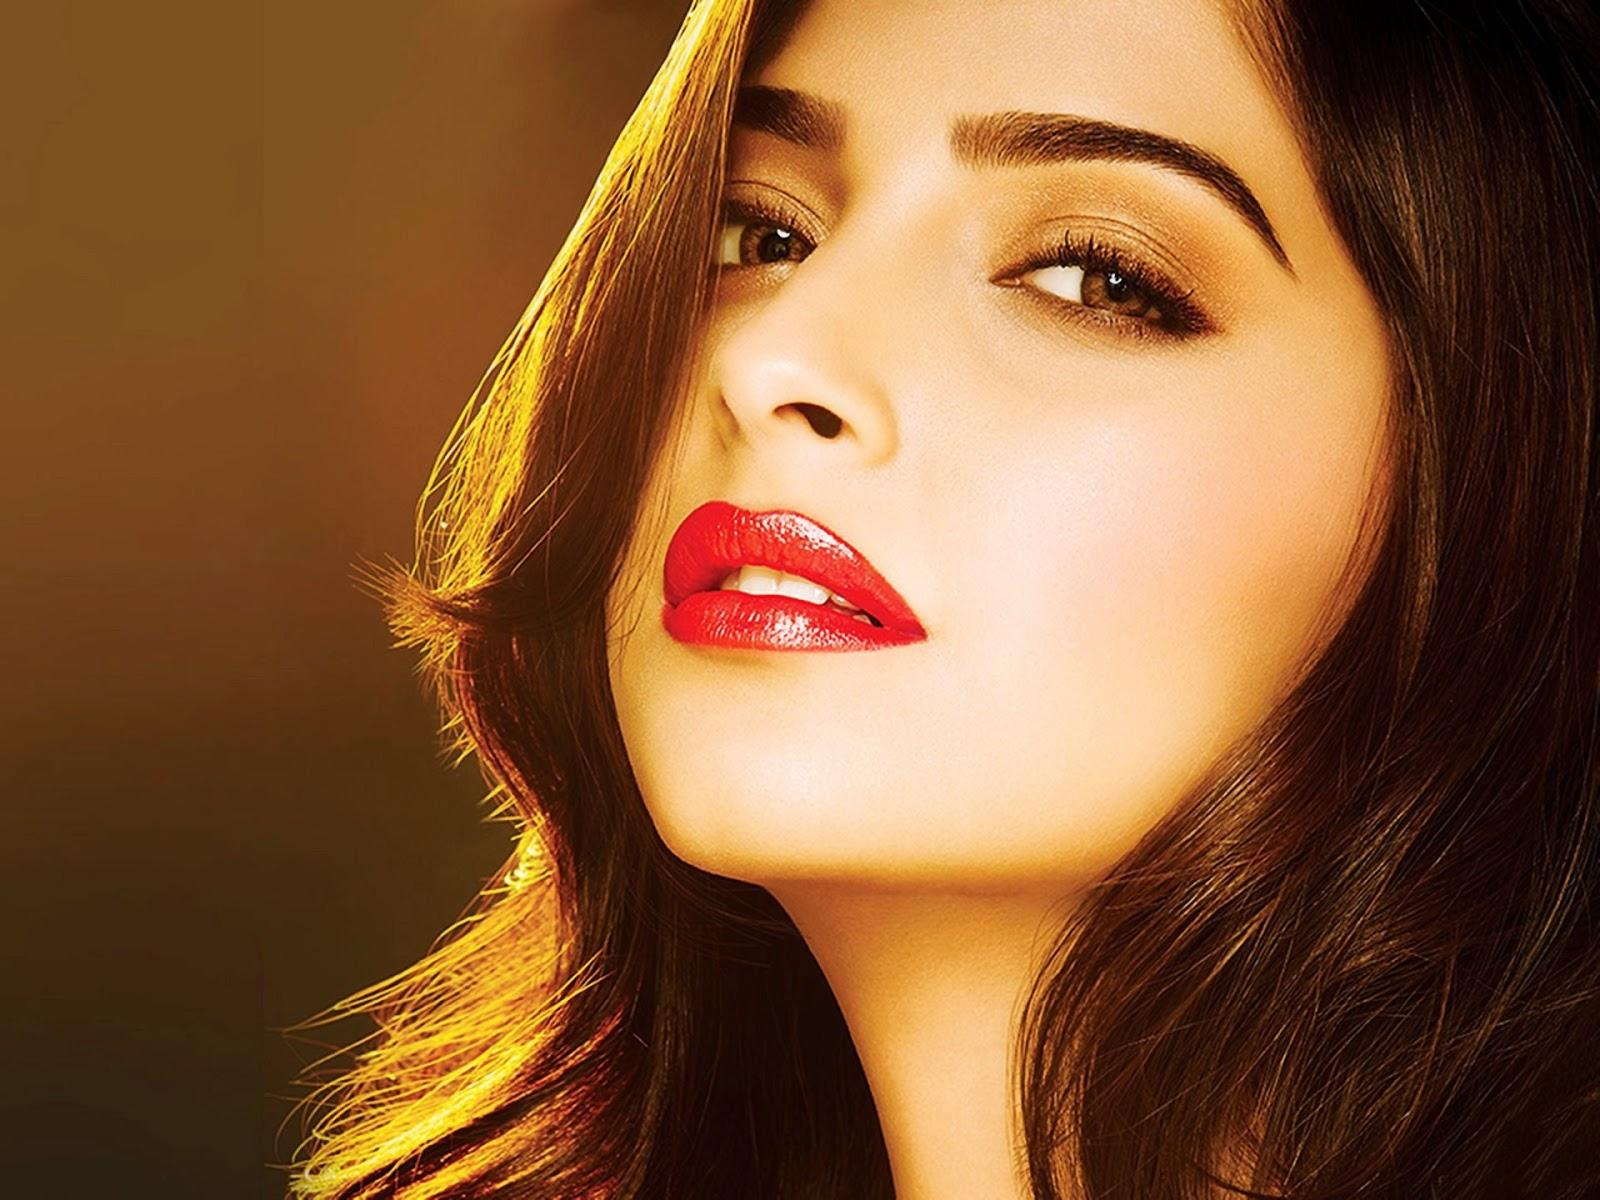 http://hdwallpaperbackgrounds.net/wp-content/uploads/2016/01/Sonam-Kapoor-HD-Wallpapers-Red-Lips.jpg